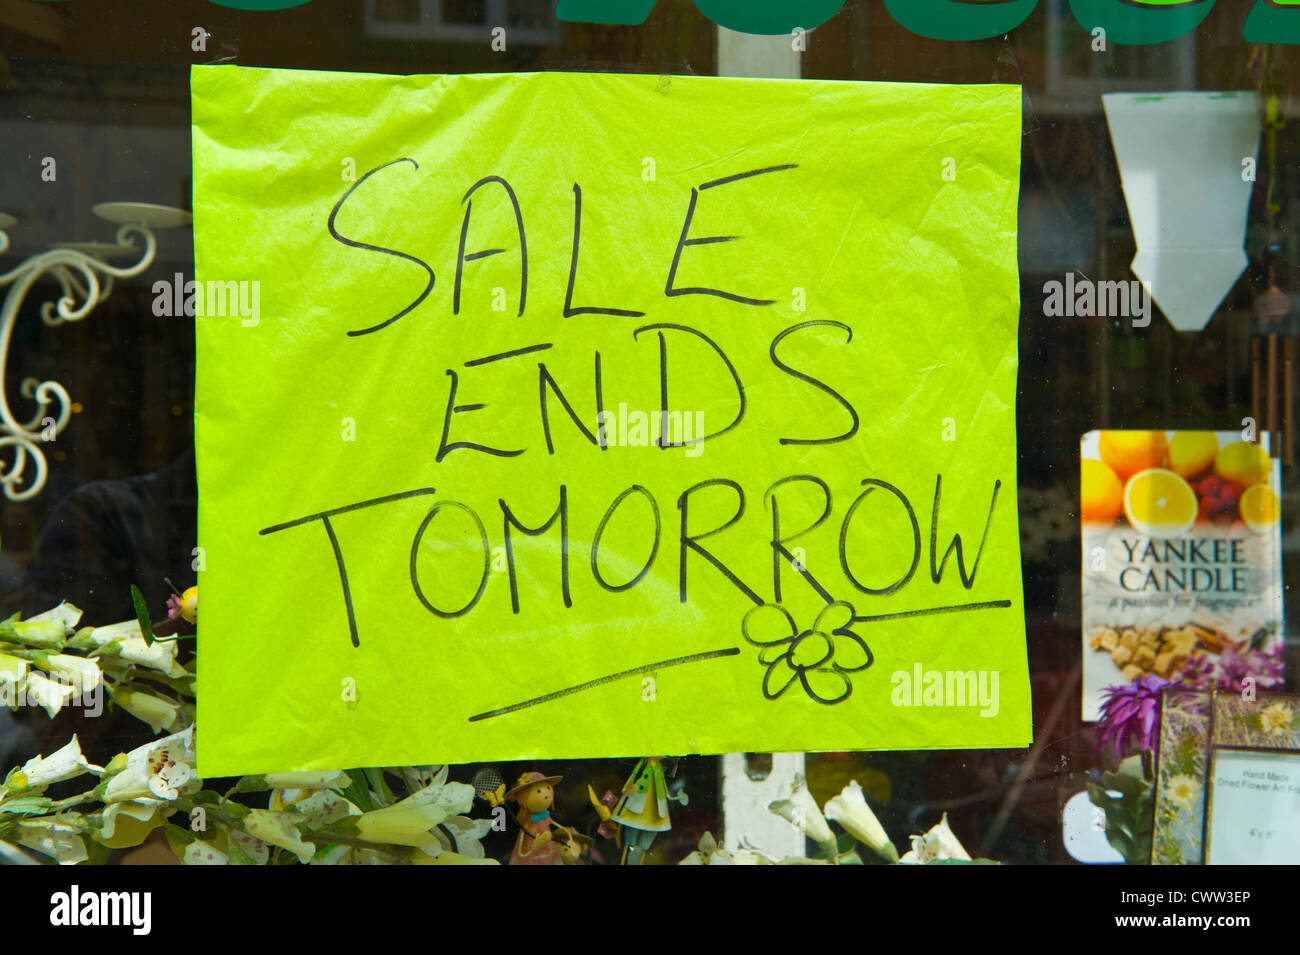 SALE ENDS TOMORROW sign in shop window Bromyard Herefordshire England UK - Stock Image